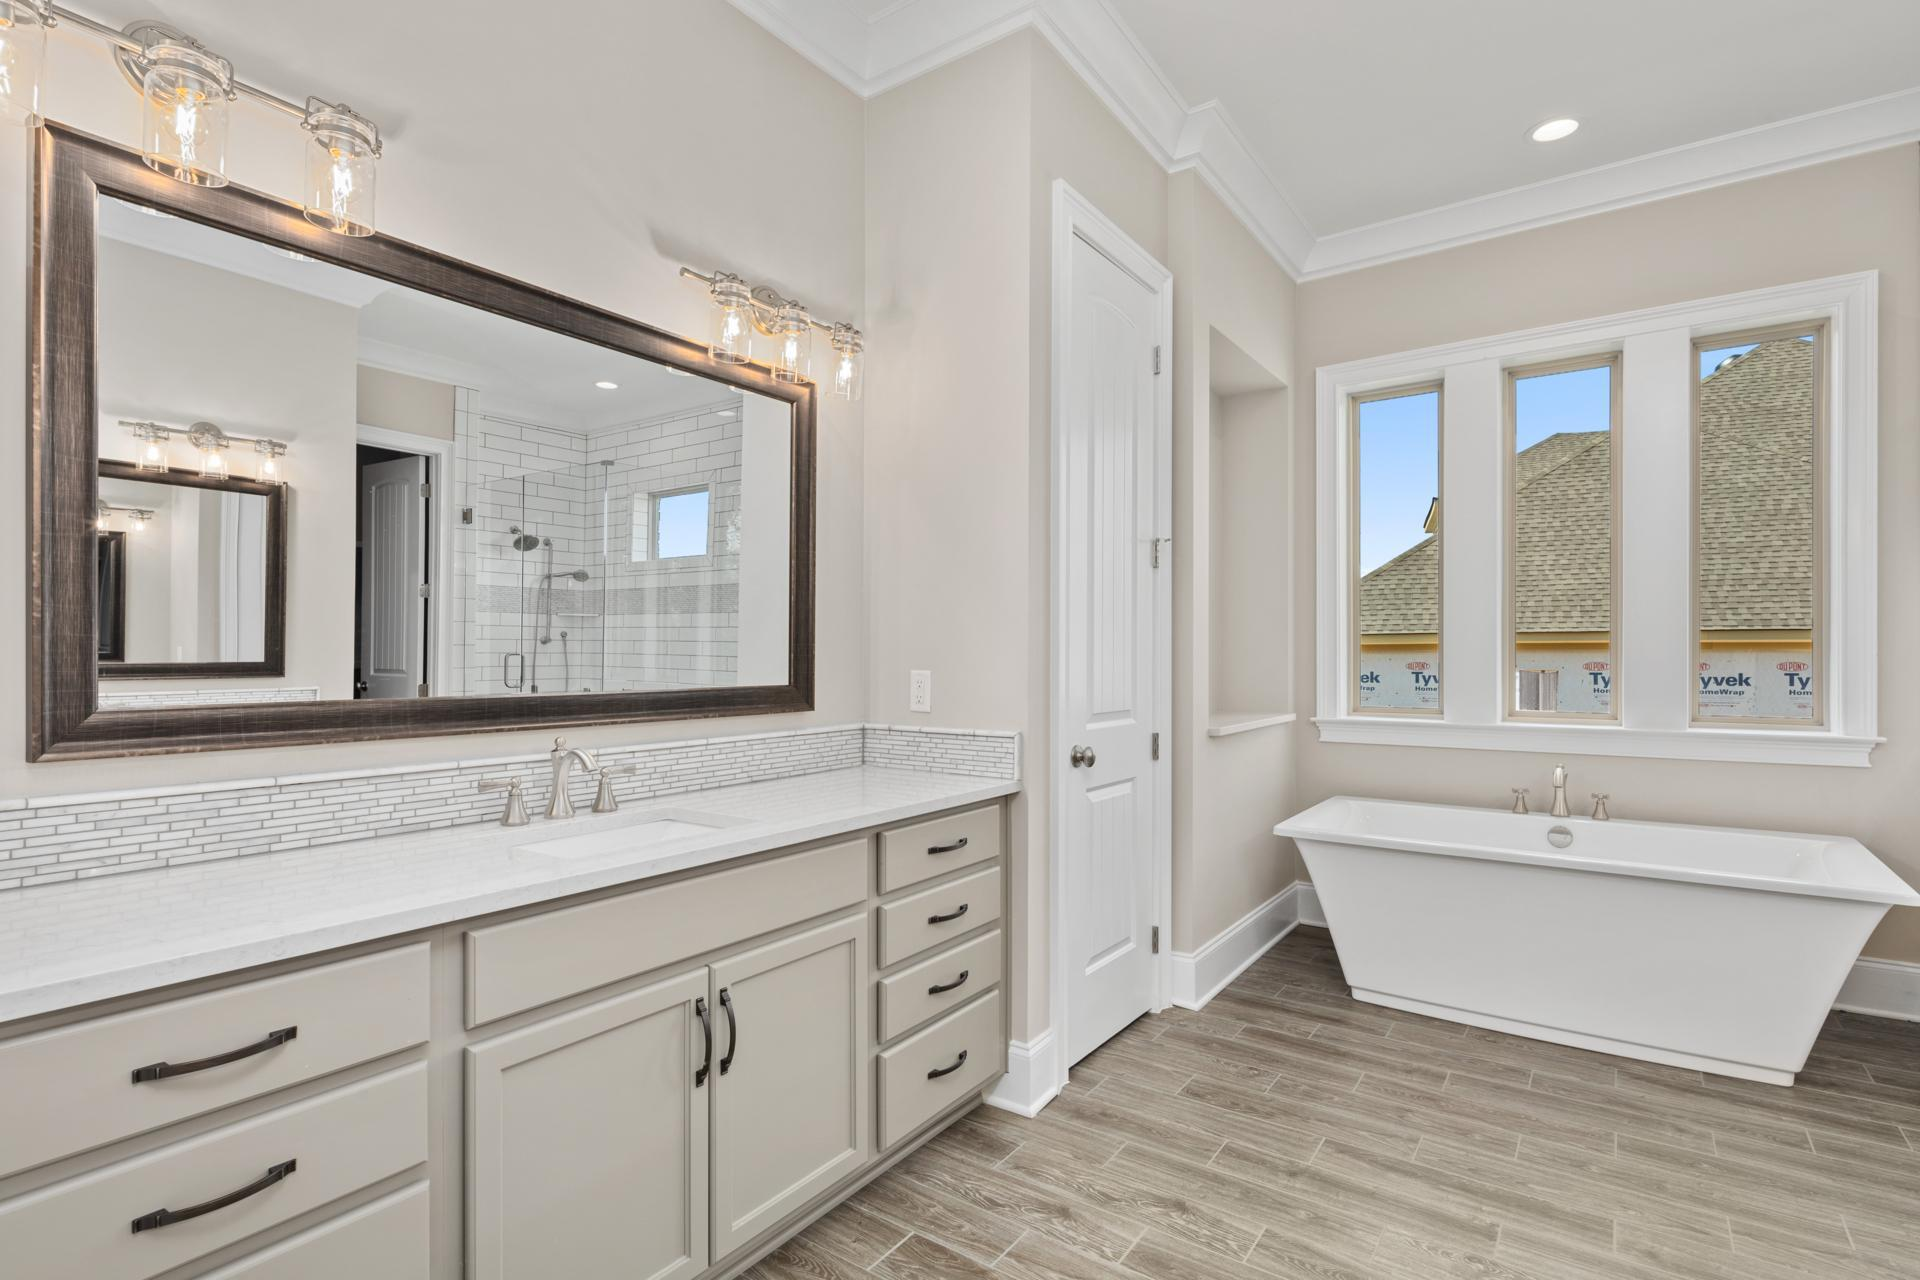 Bathroom featured in the Dresden By Drees Homes in Nashville, TN